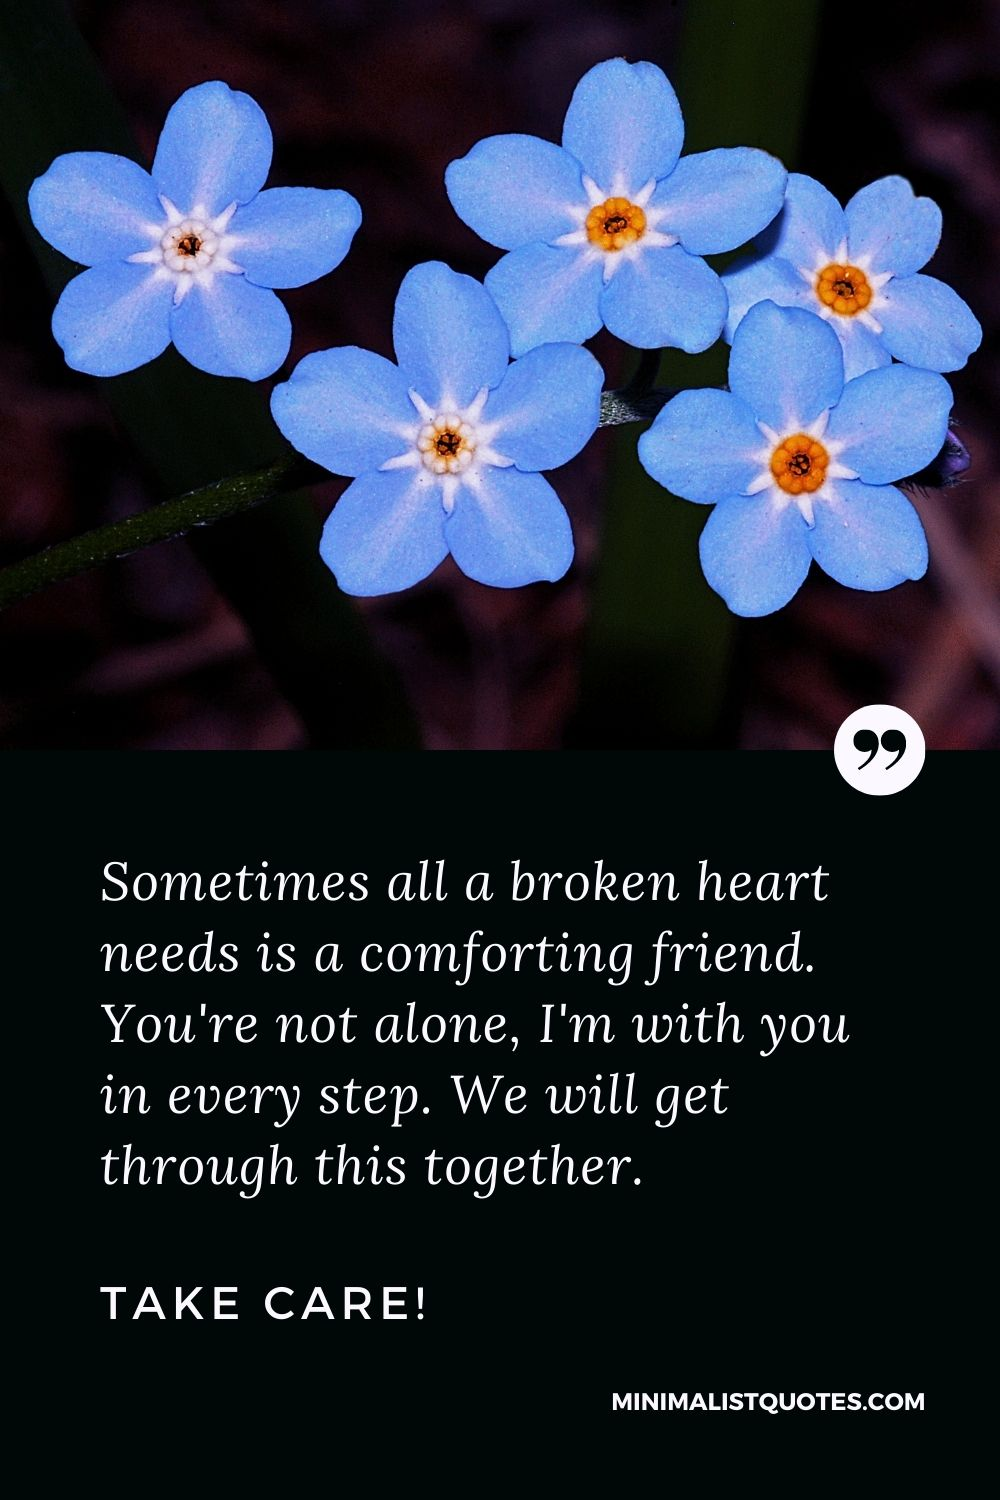 Divorce Quote, Sympathy & Message With Image: Sometimes all a broken heart needs is a comforting friend. You're not alone, I'm with you in every step. We will get through this together. Take Care!